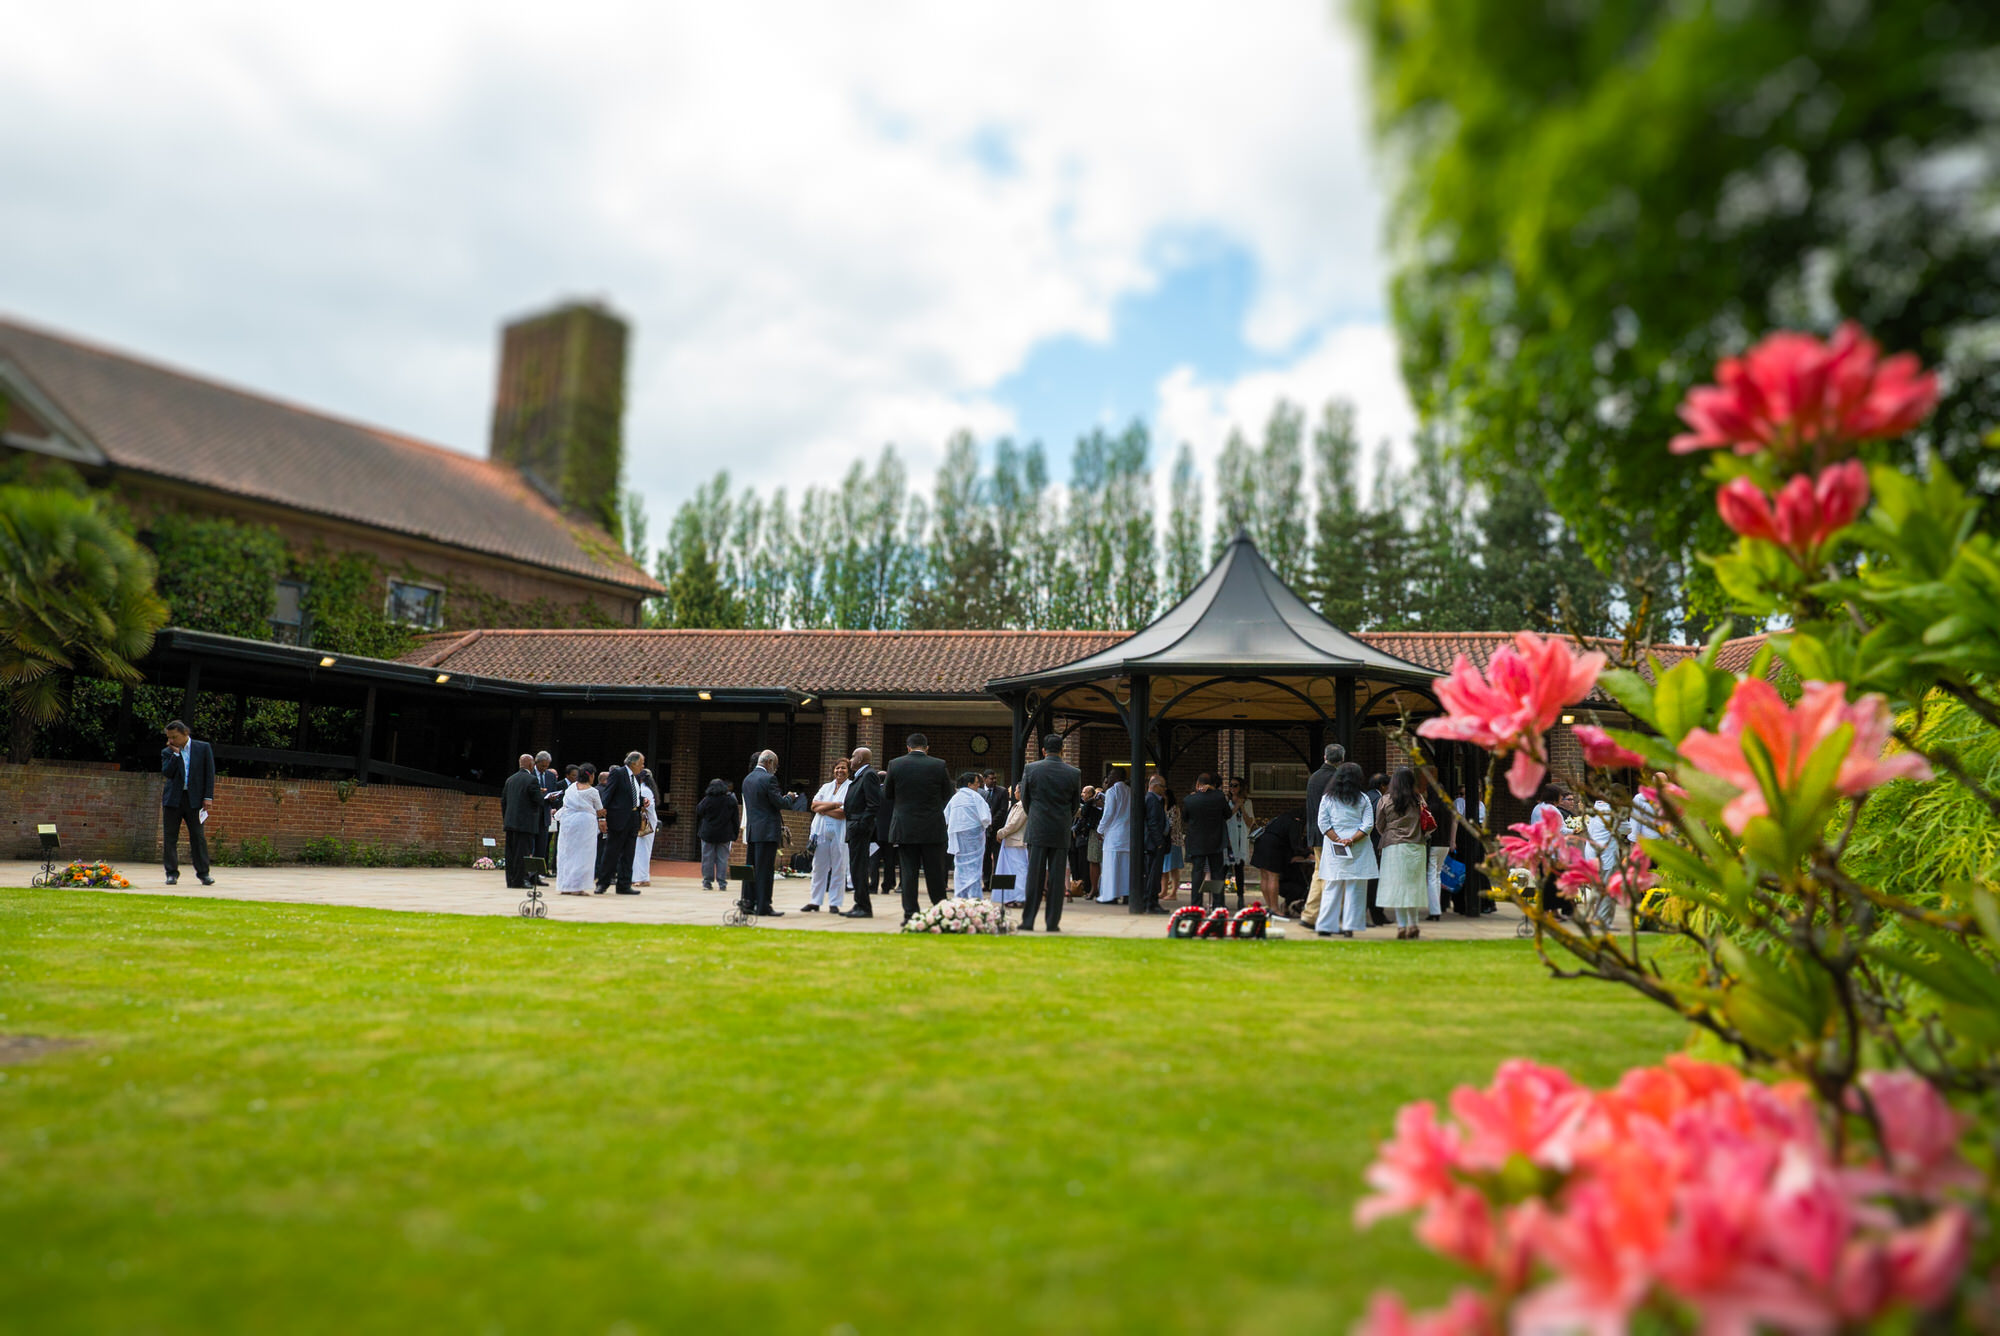 West Herts Crematorium Funeral Filming - Buddhist Funeral Filming - 10th May 2018